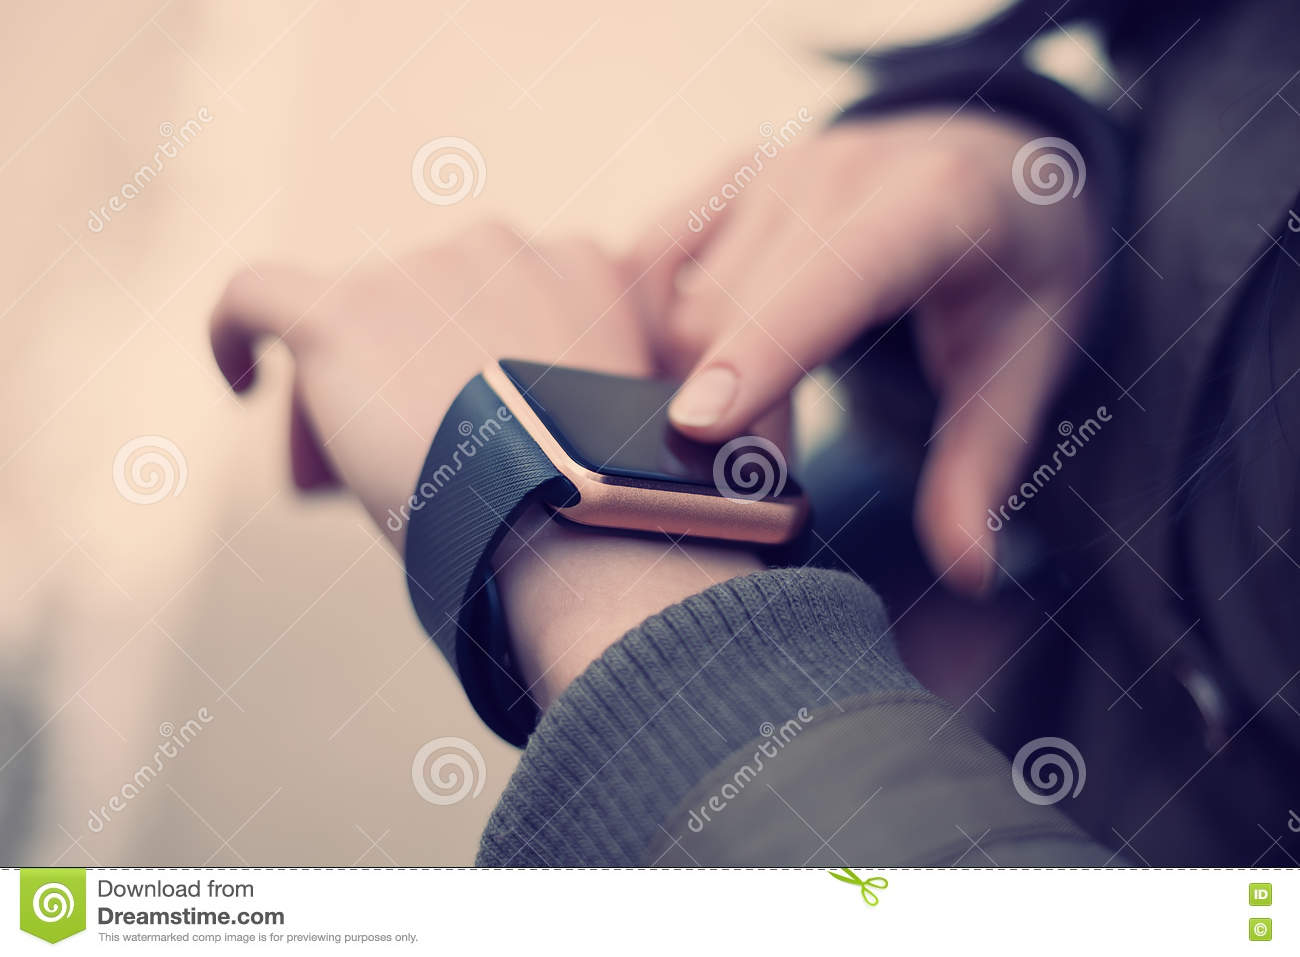 Hands Of A Girl Using Her Smart Watch Stock Image - Image of ...